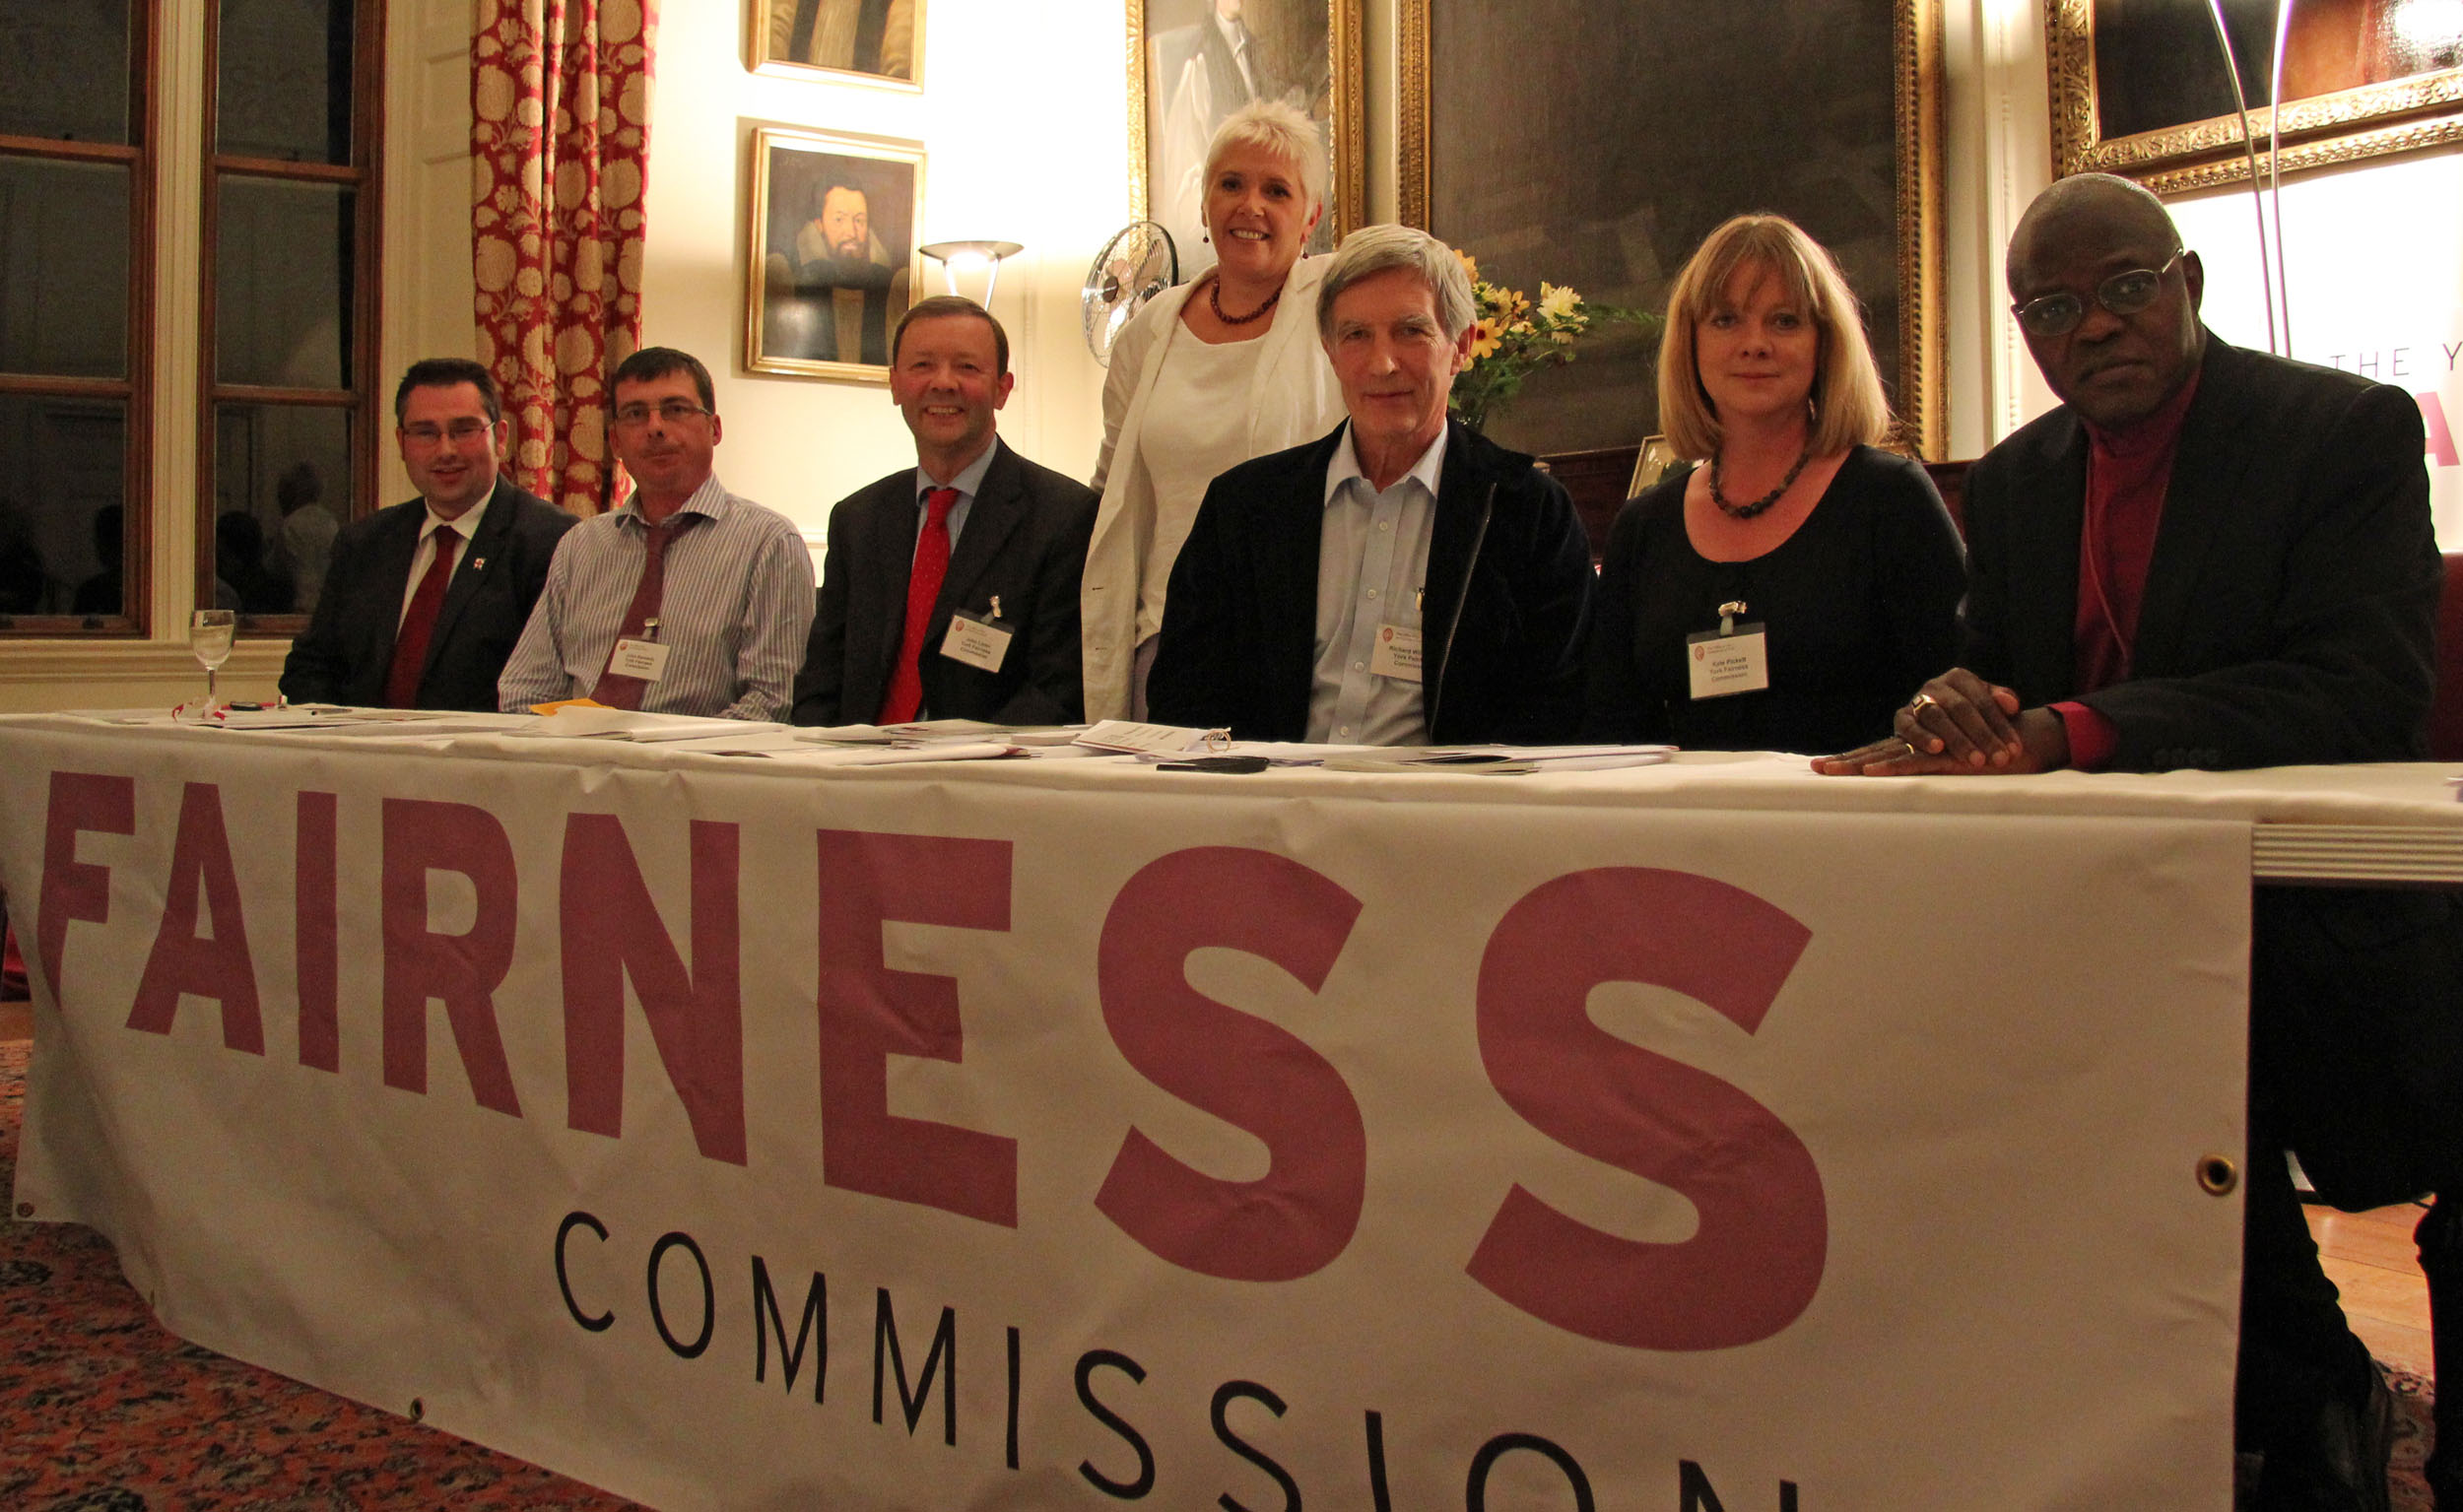 Fairness Commission Panel: James Alexander, John Kennedy, John Lister, Ruth Redfern, Richard Wilkinson, Kate Pickett, ABY at Bishopthorpe Palace